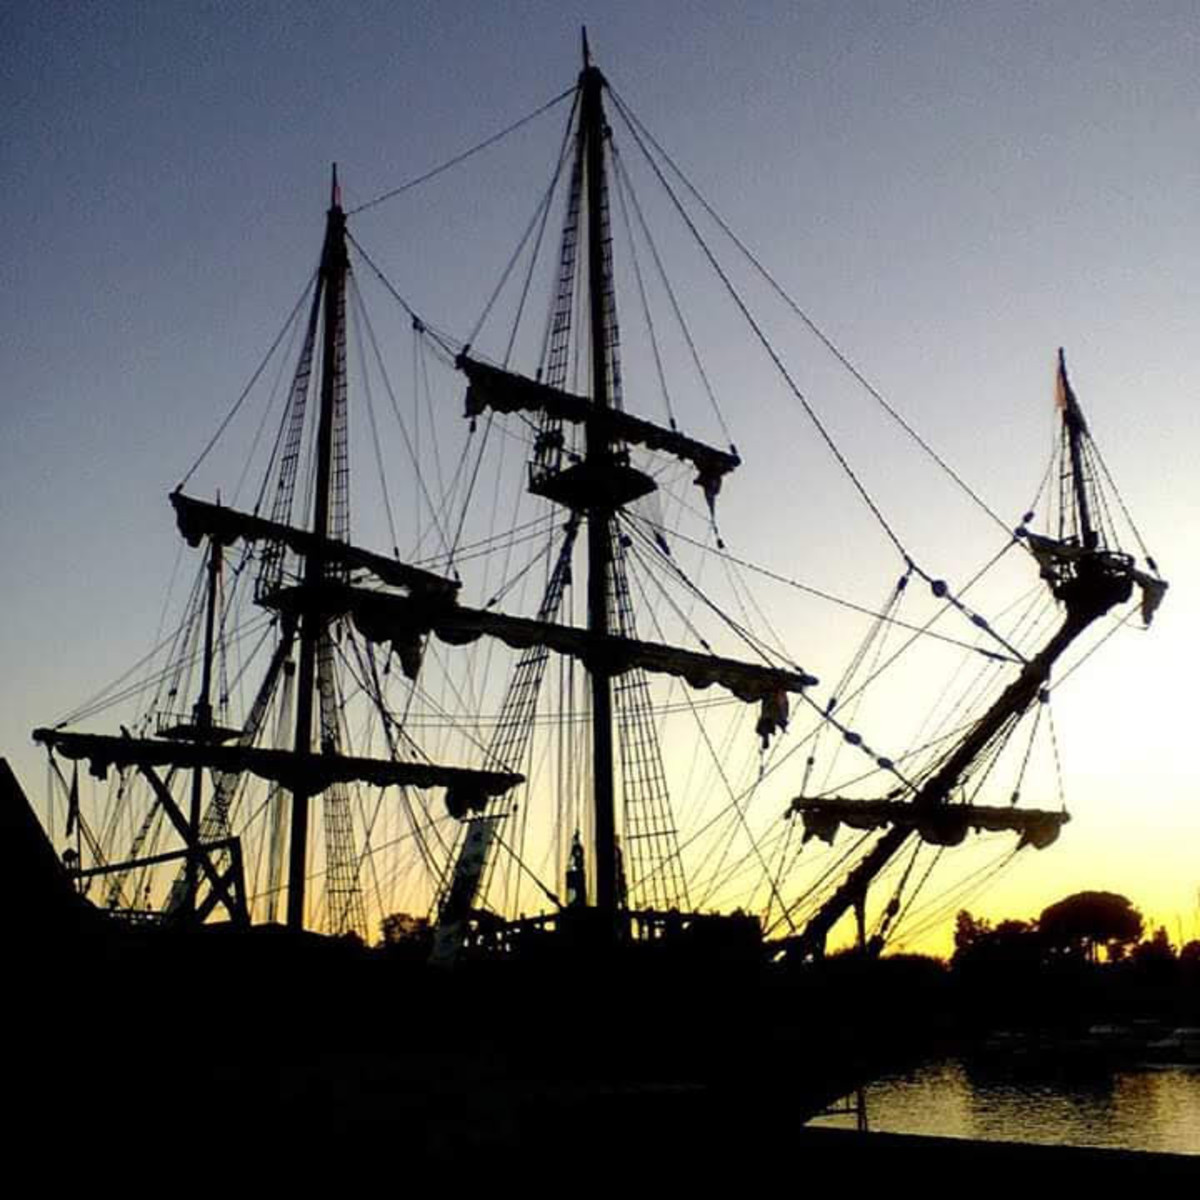 Replica of the portuguese boats that crossed the Atlantic ocean.